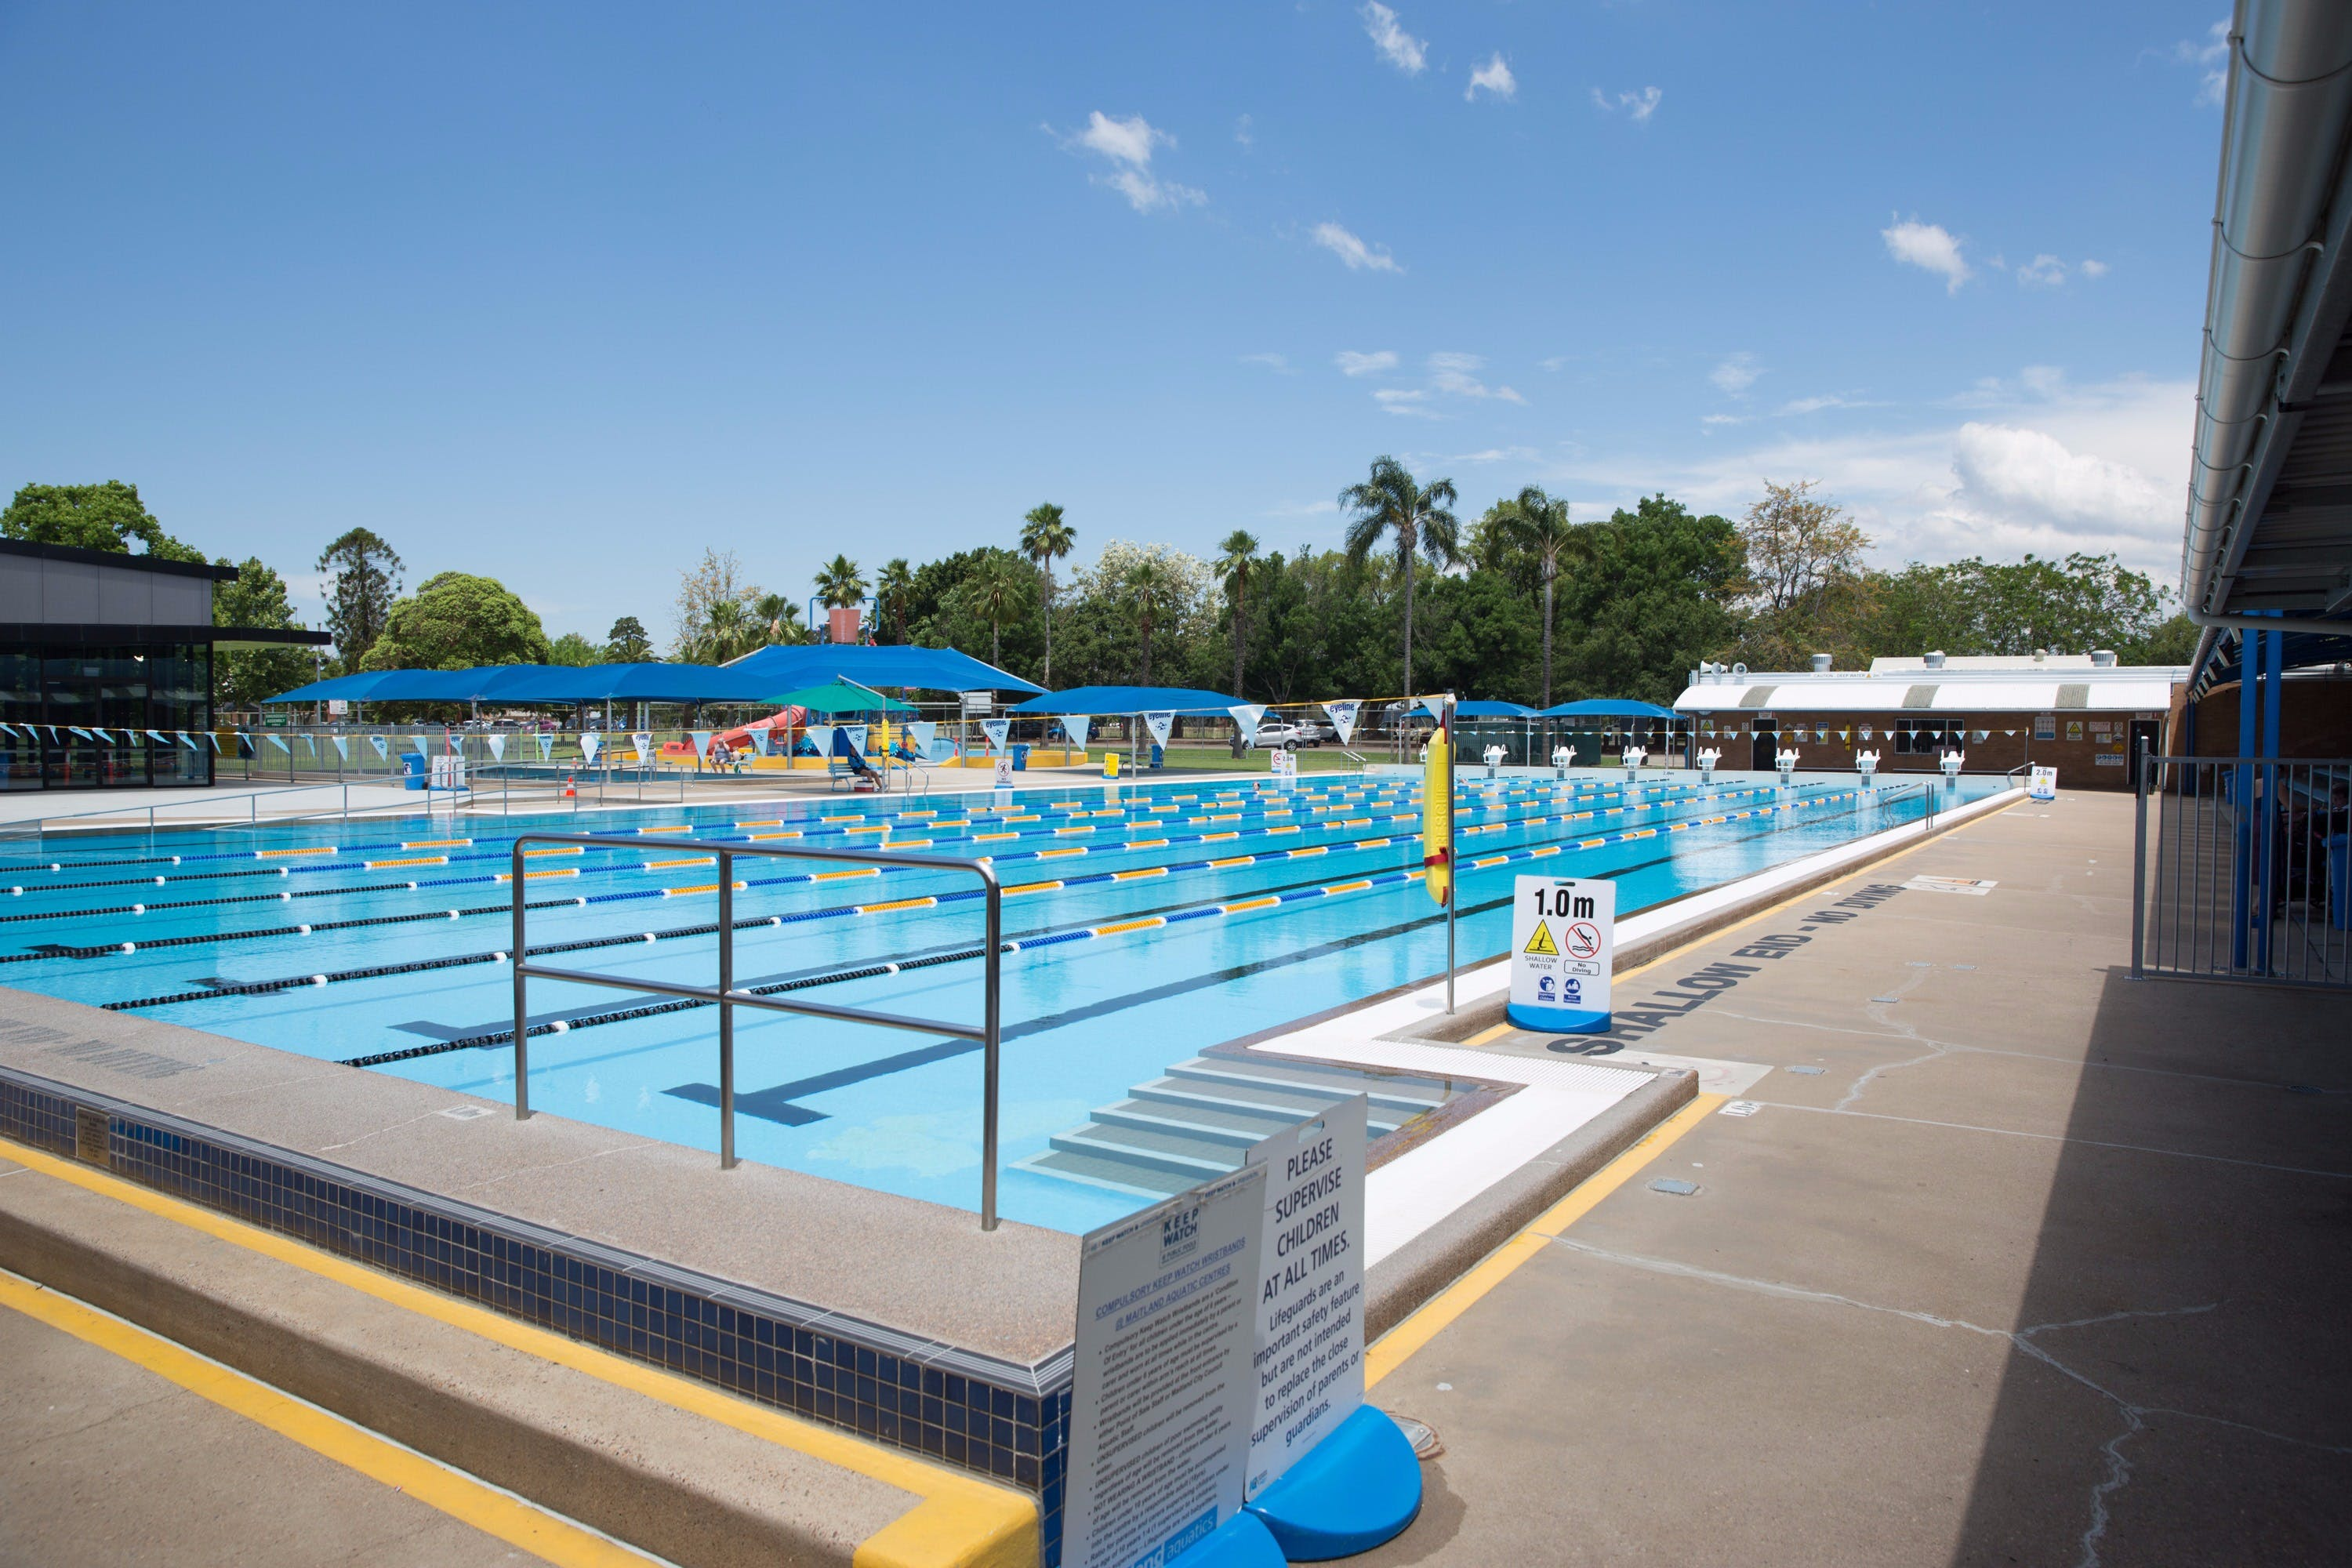 East Maitland Aquatic Centre